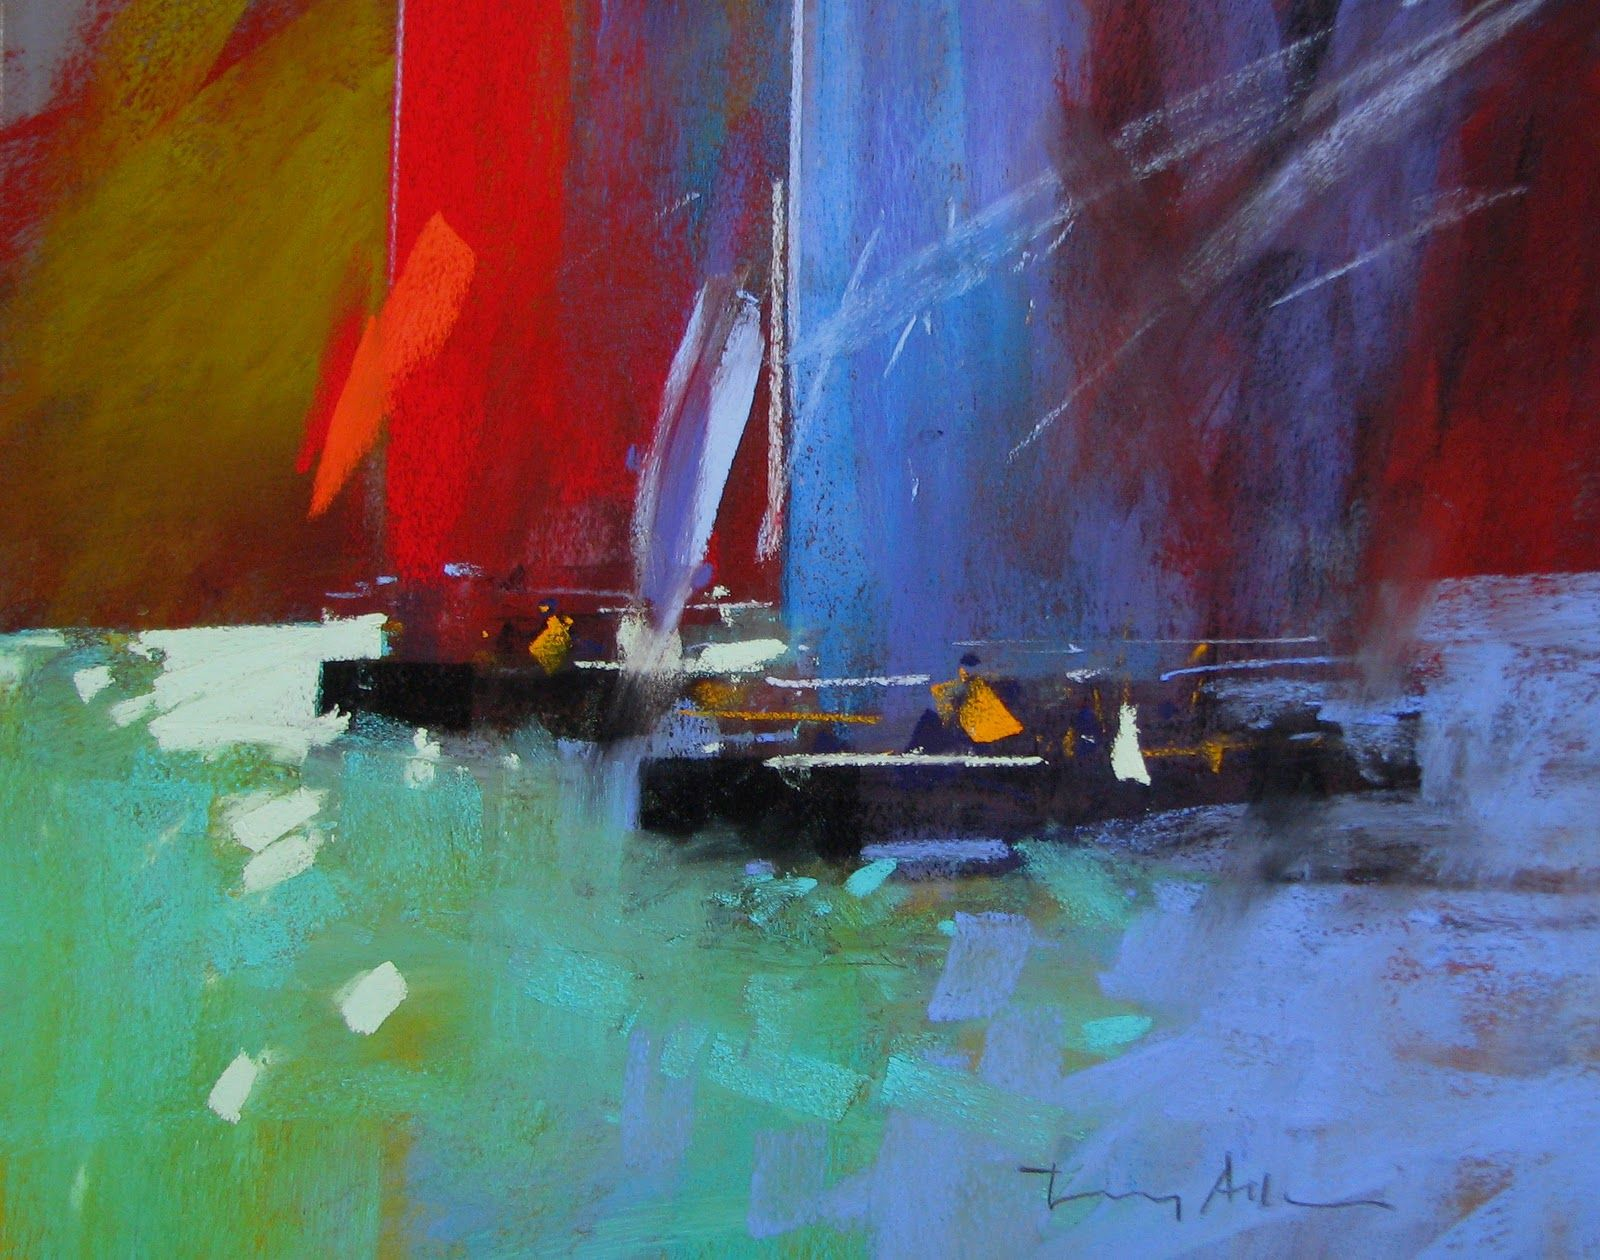 Pinturas Color Pastel Tony Allain Dpanz Psa Colour And Light Tony Allain